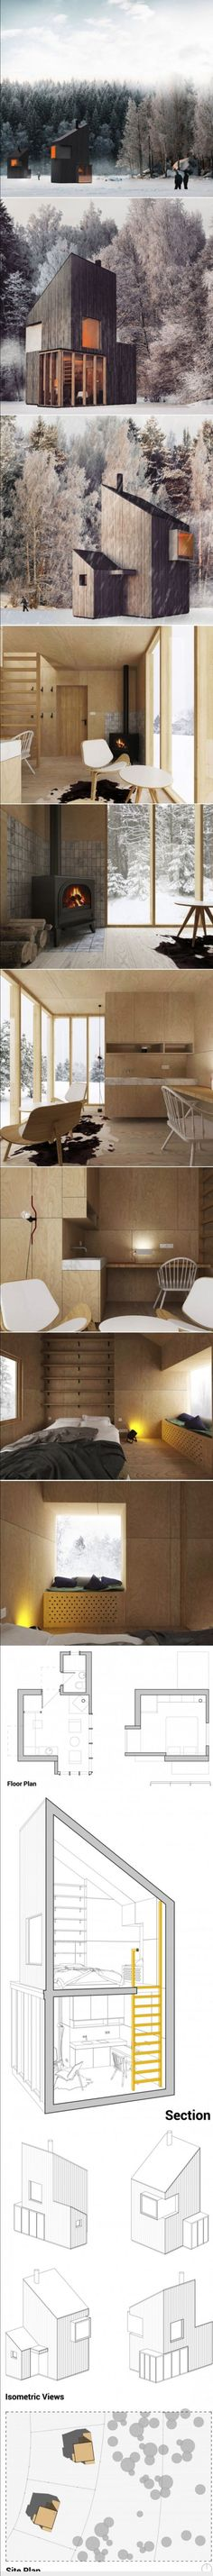 A Modern Winter Shelter by FO4A Architecture  Armin Mešic, principal of FO4A Architecture, designed this modern wooden shelter to serve as a ski hut or a weekend retreat.  With a floor area of 258 square feet (24sqm), it is to be built on Bjelašnica, a mountain in central Bosnia and Herzegovina